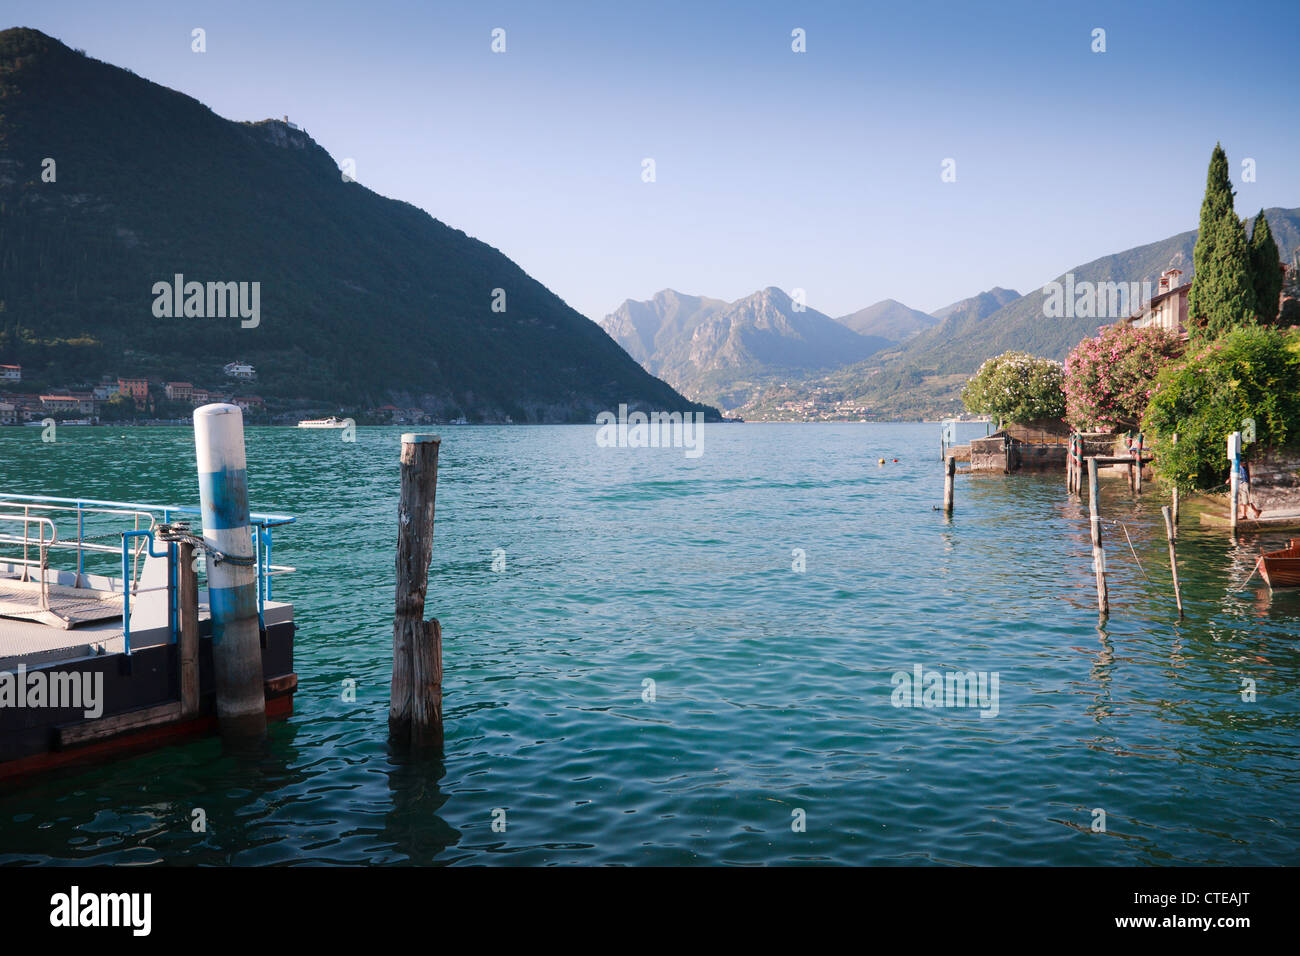 Sulzano, Lago d'Iseo, lake with boat moorings, gardens, island of Monte Isola and mountains behind. - Stock Image